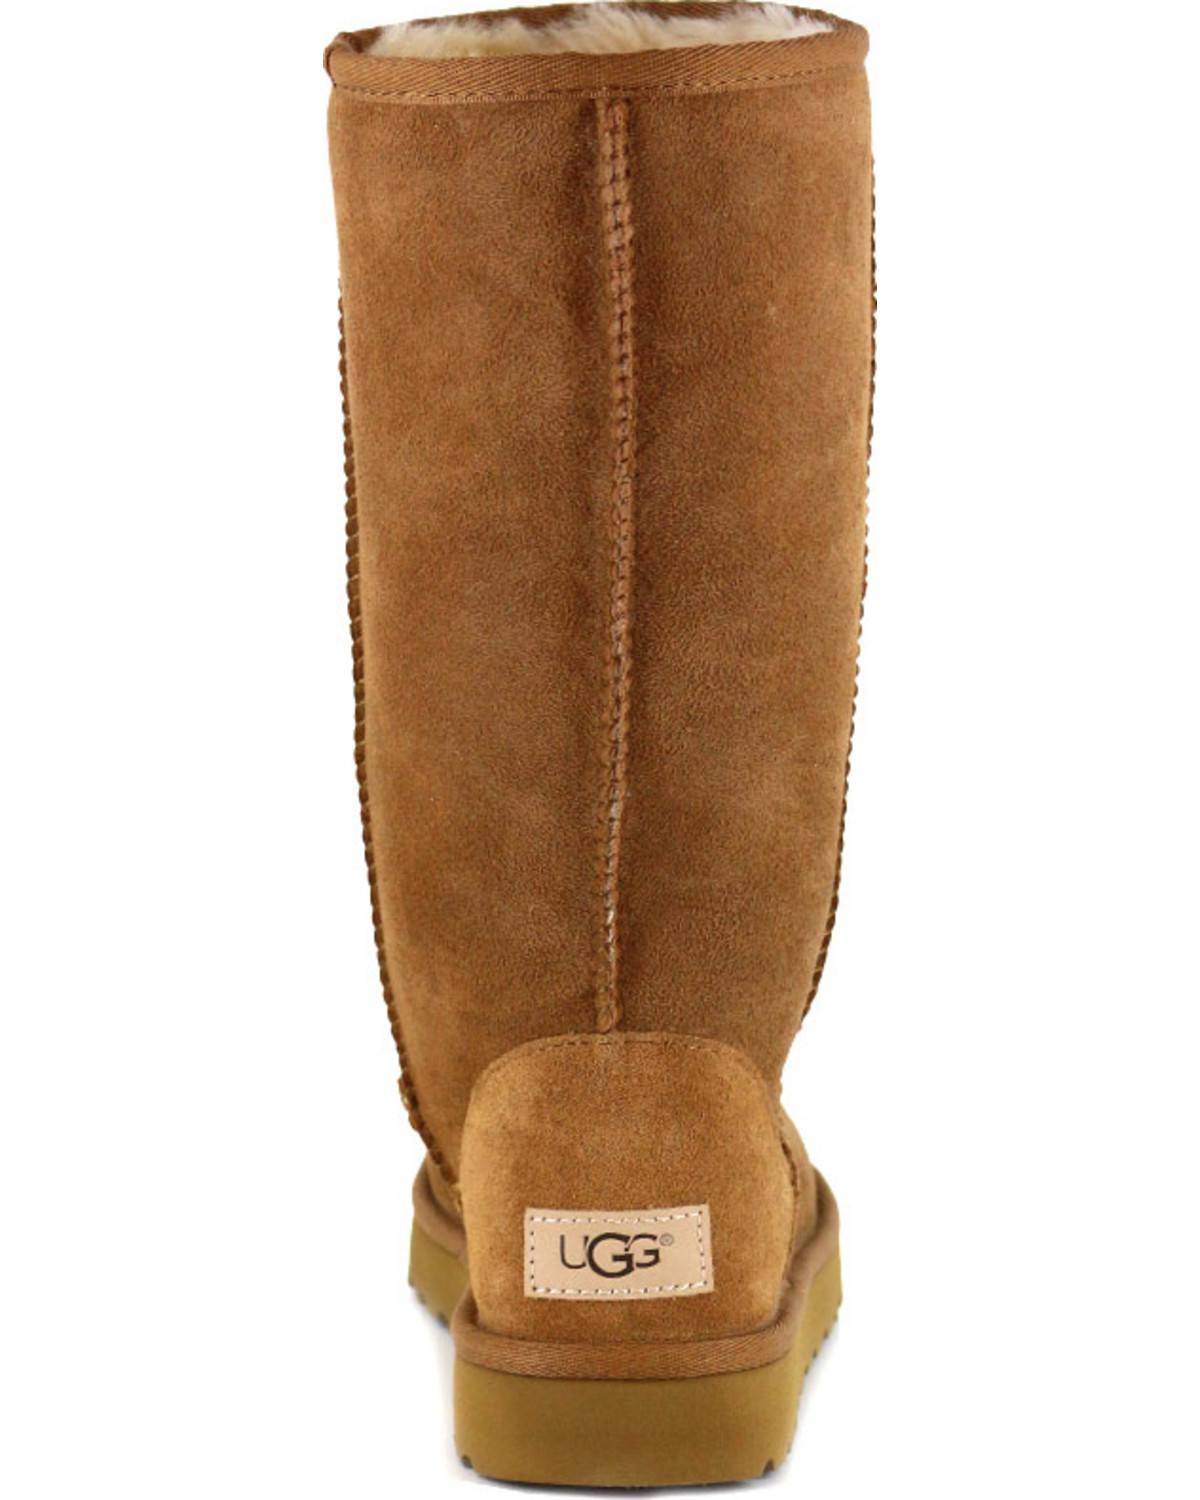 5d709f456f0d1 UGG Women s Classic II Tall Boots - Country Outfitter